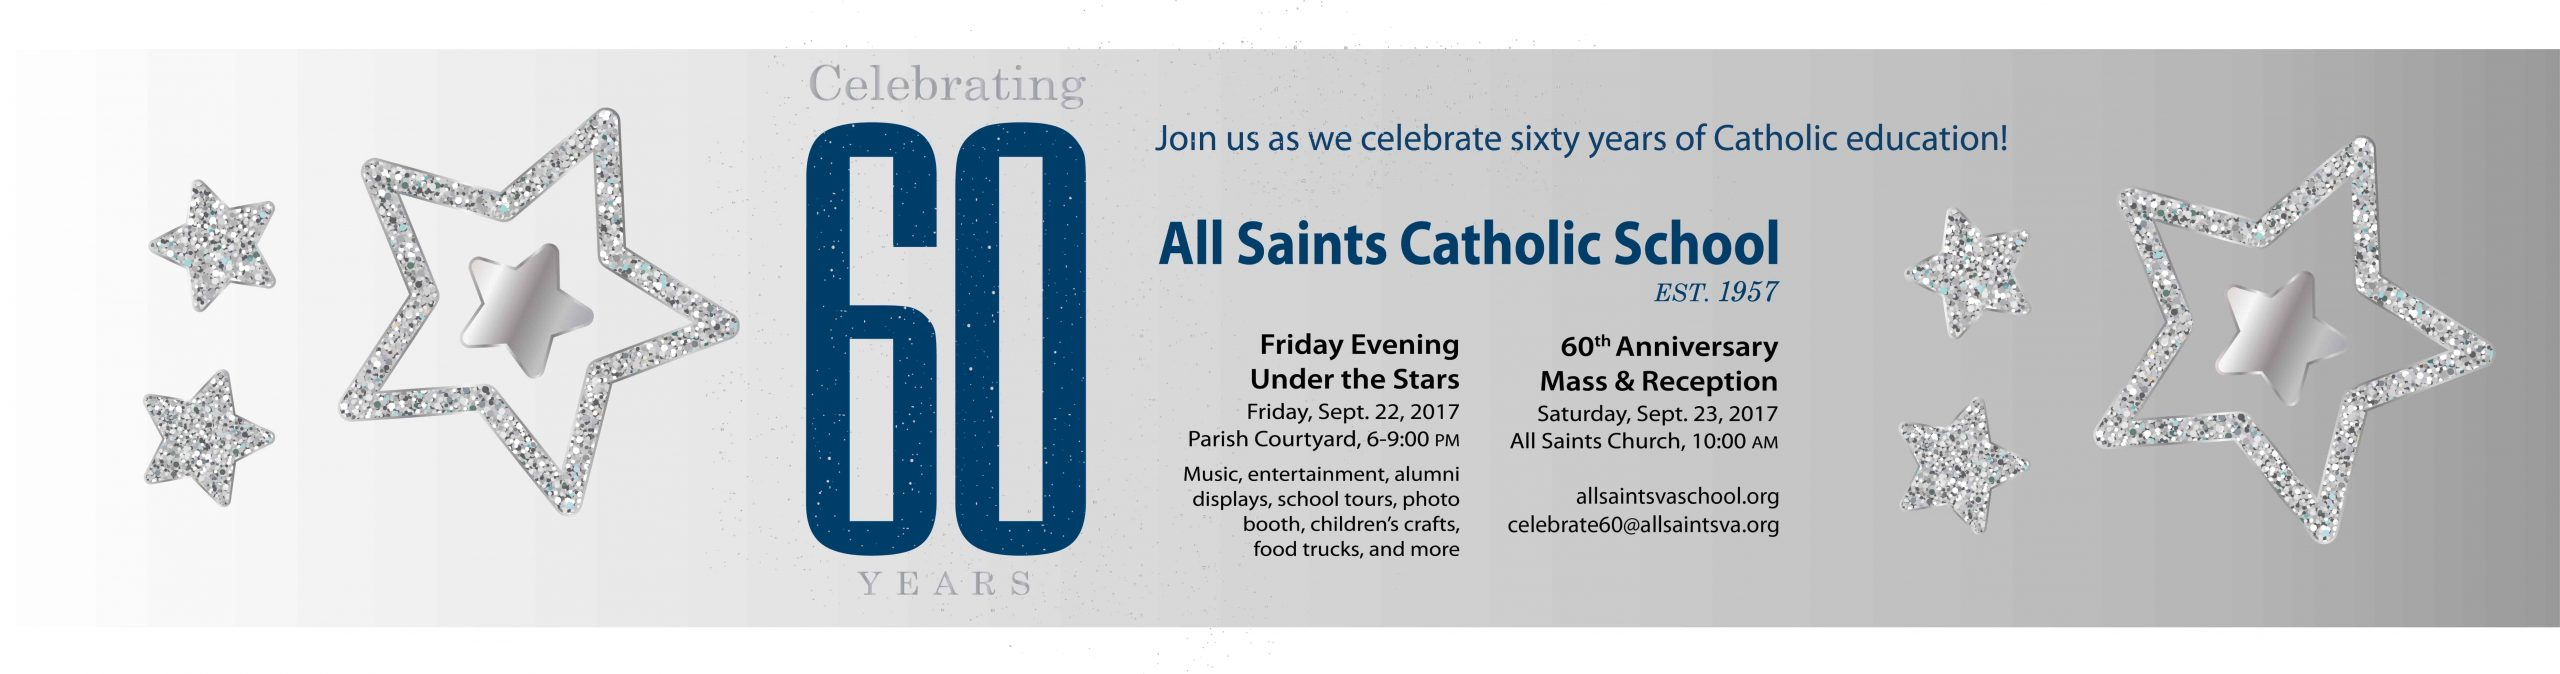 All Saints Catholic School 60th Anniversary Celebration